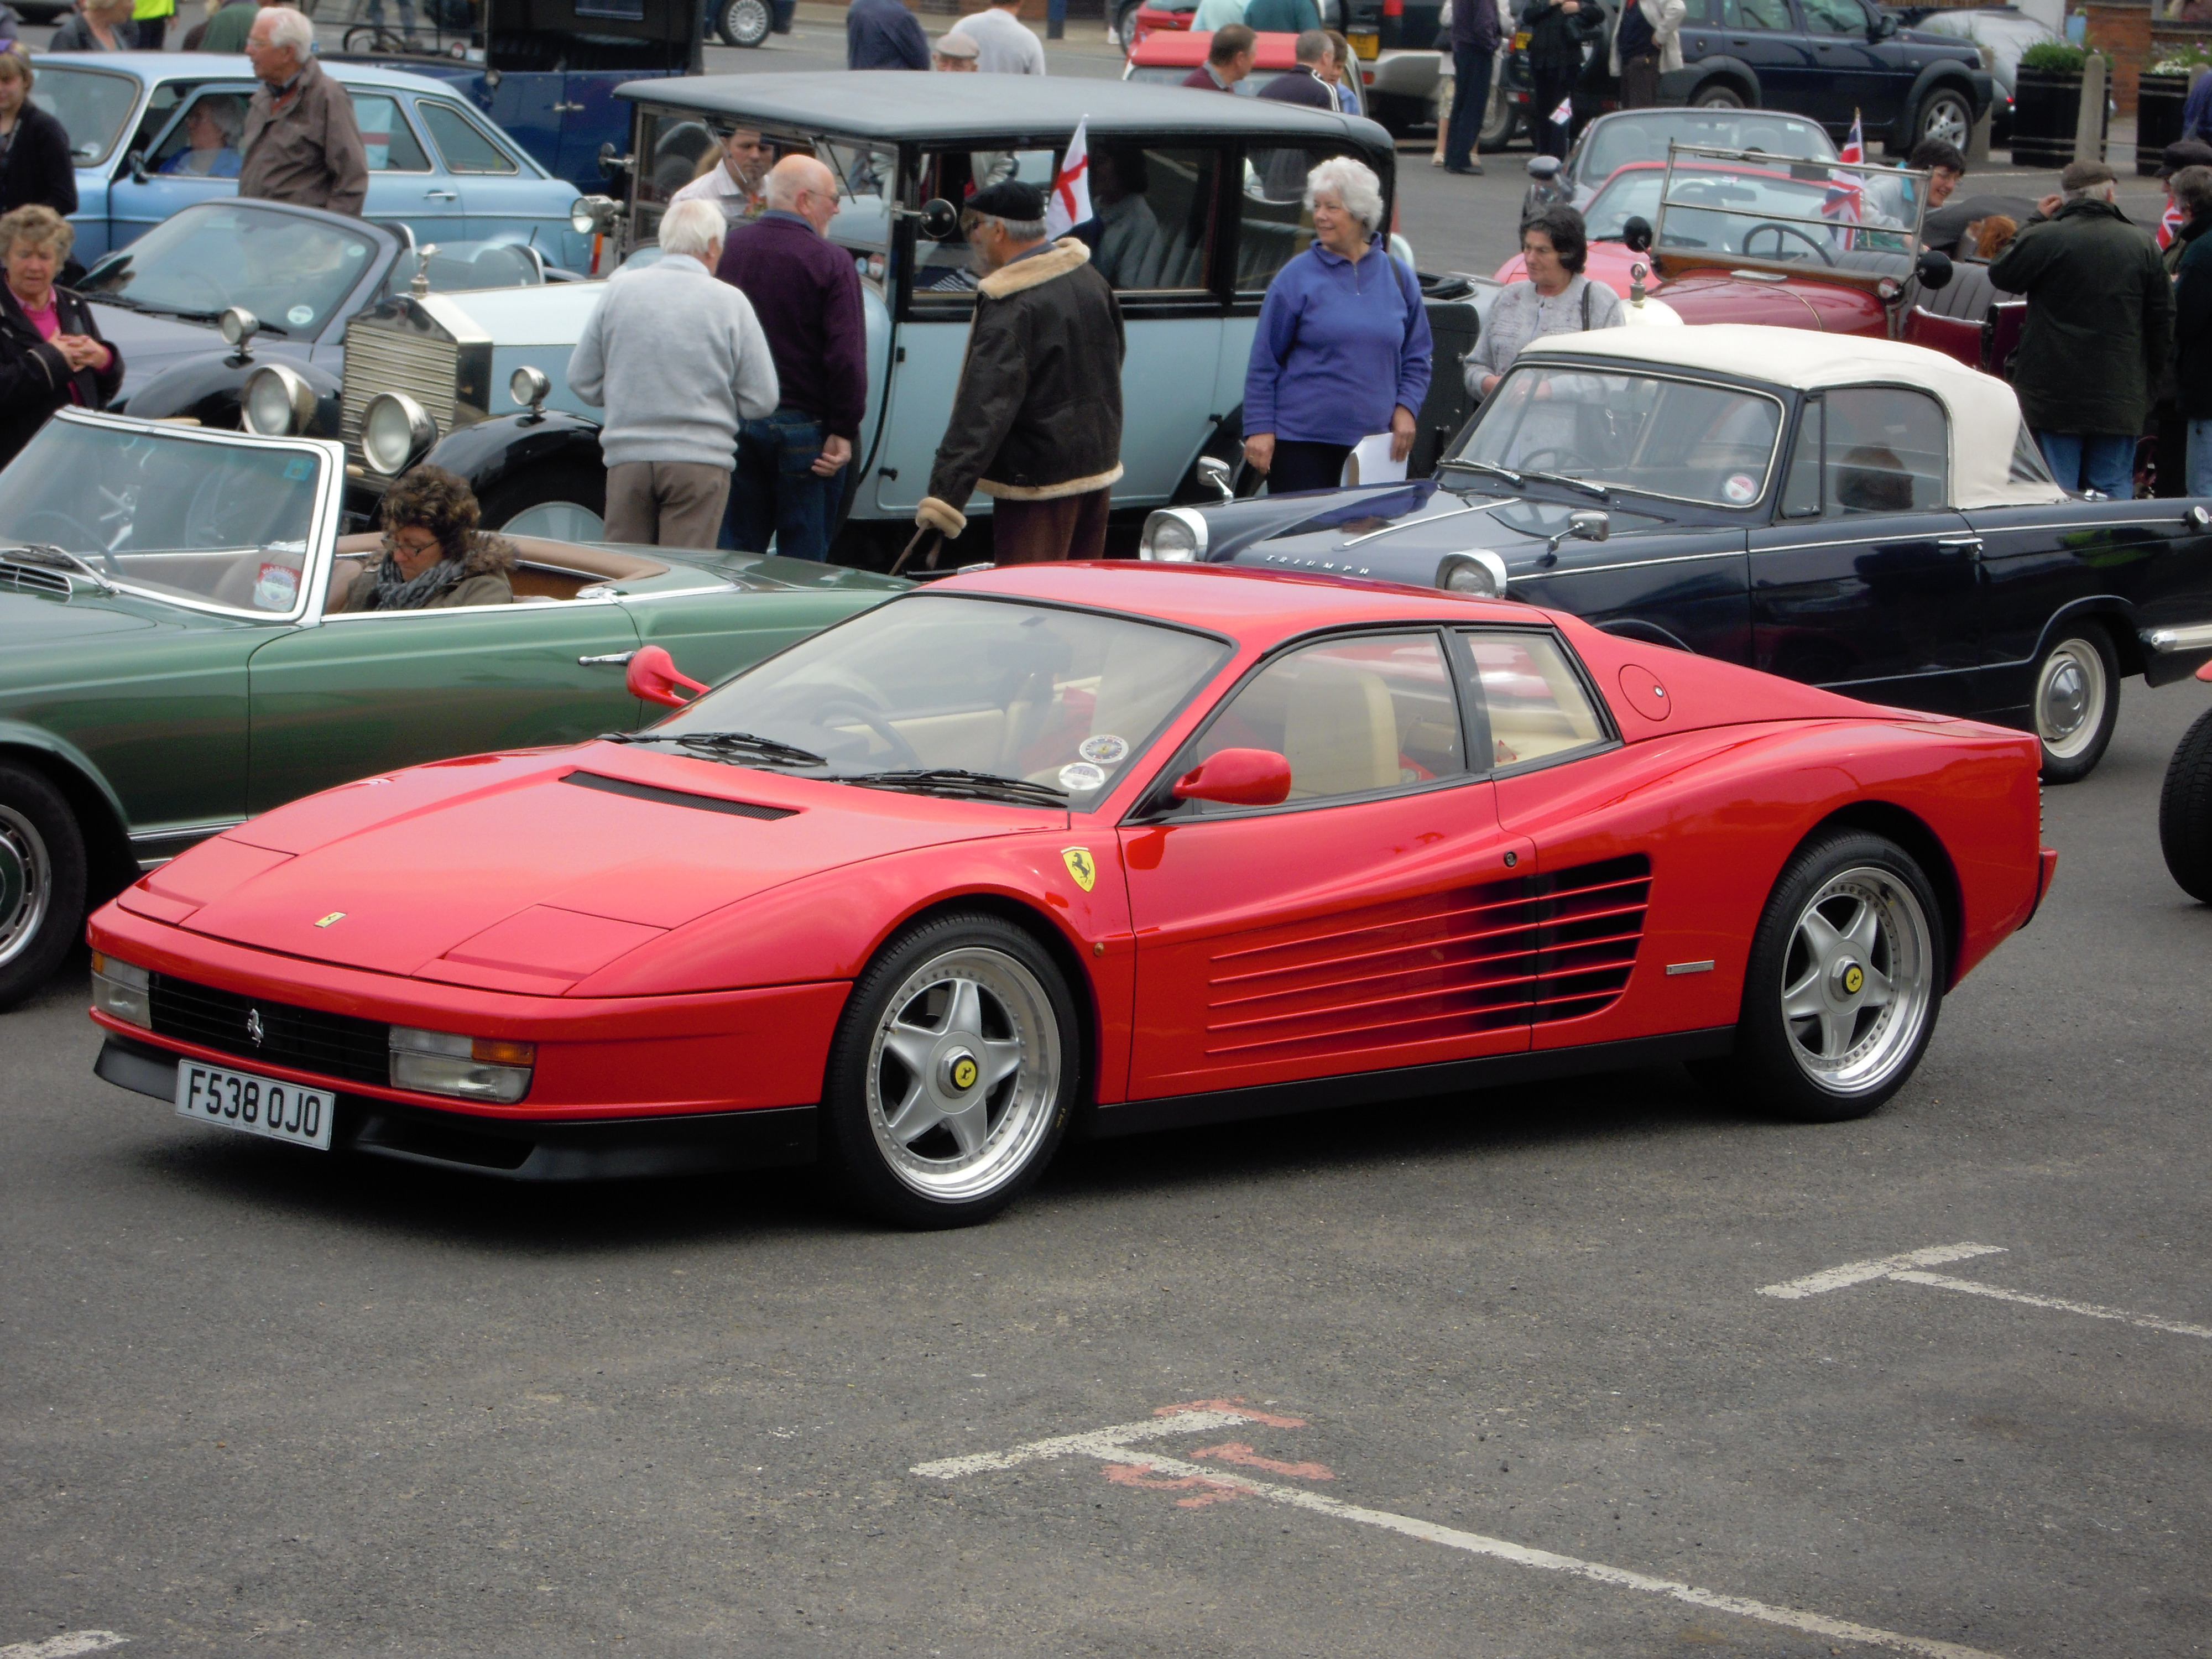 Sports model Ferrari Testarossa, classic model ferrari